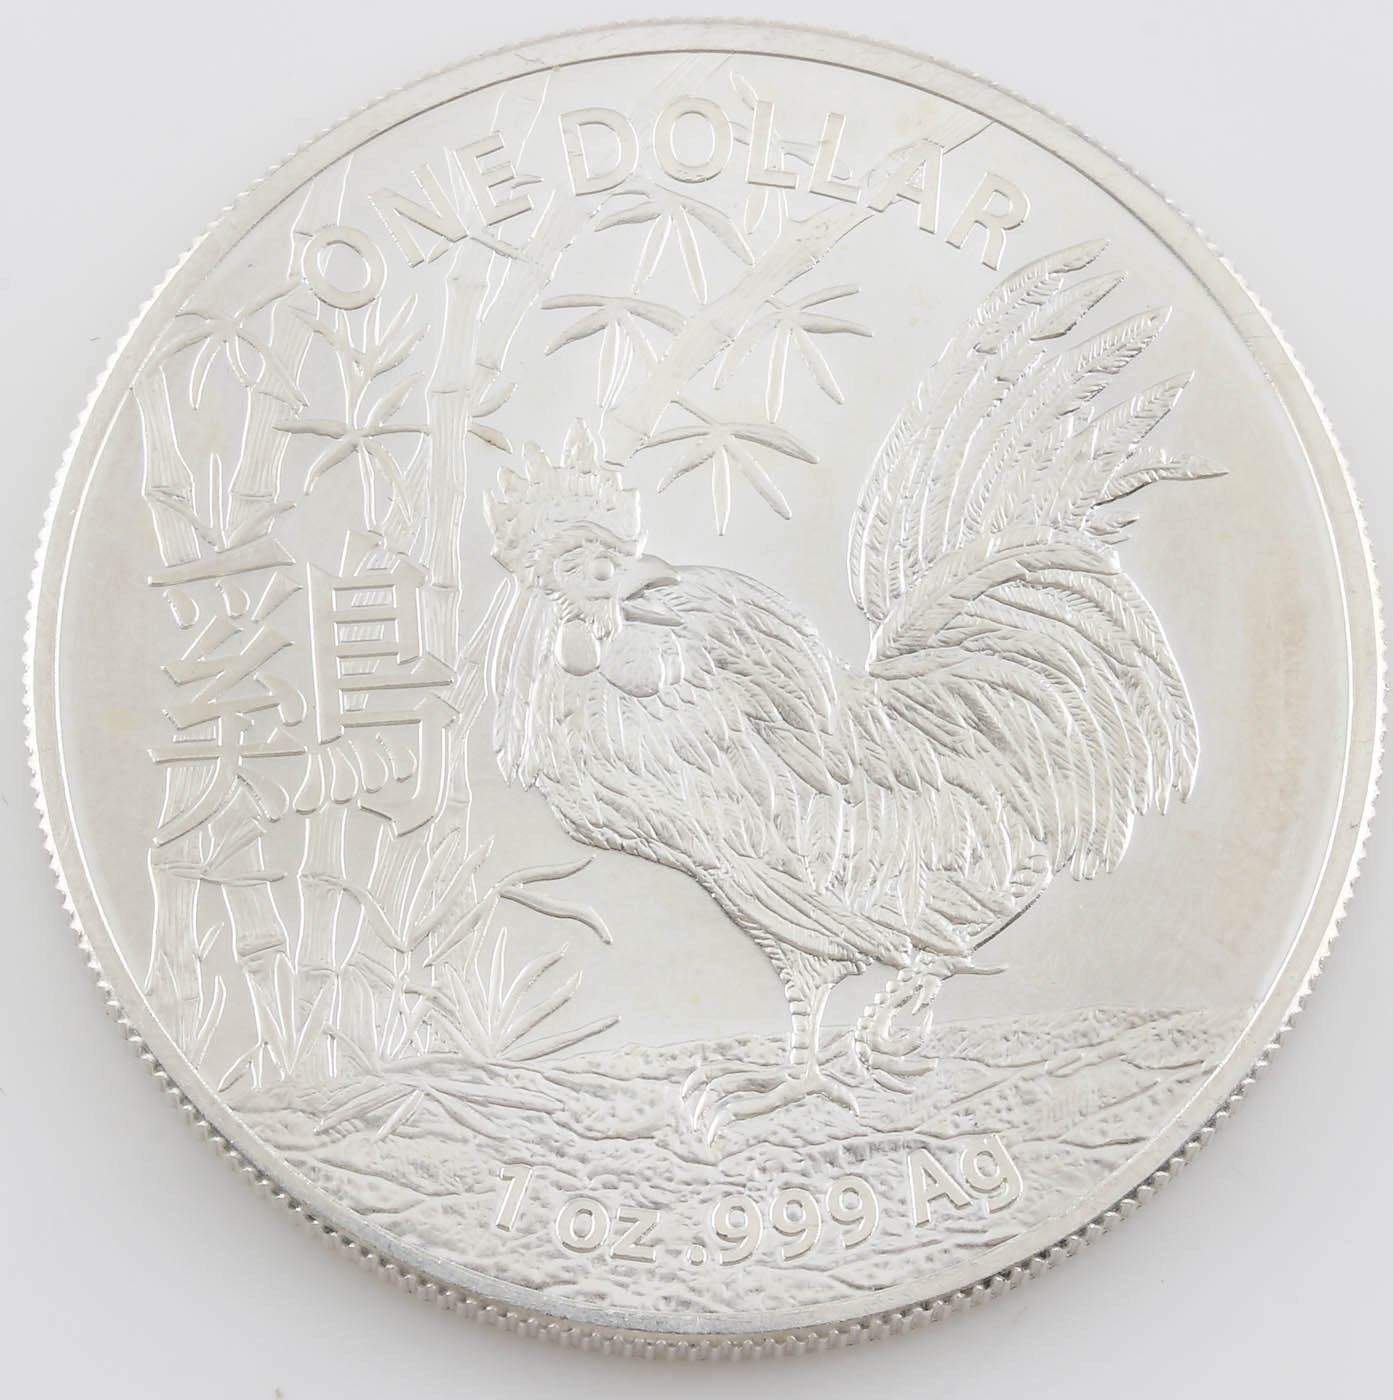 2017 Australia $1 Lunar Year of the Rooster One Troy Ounce Silver Coin